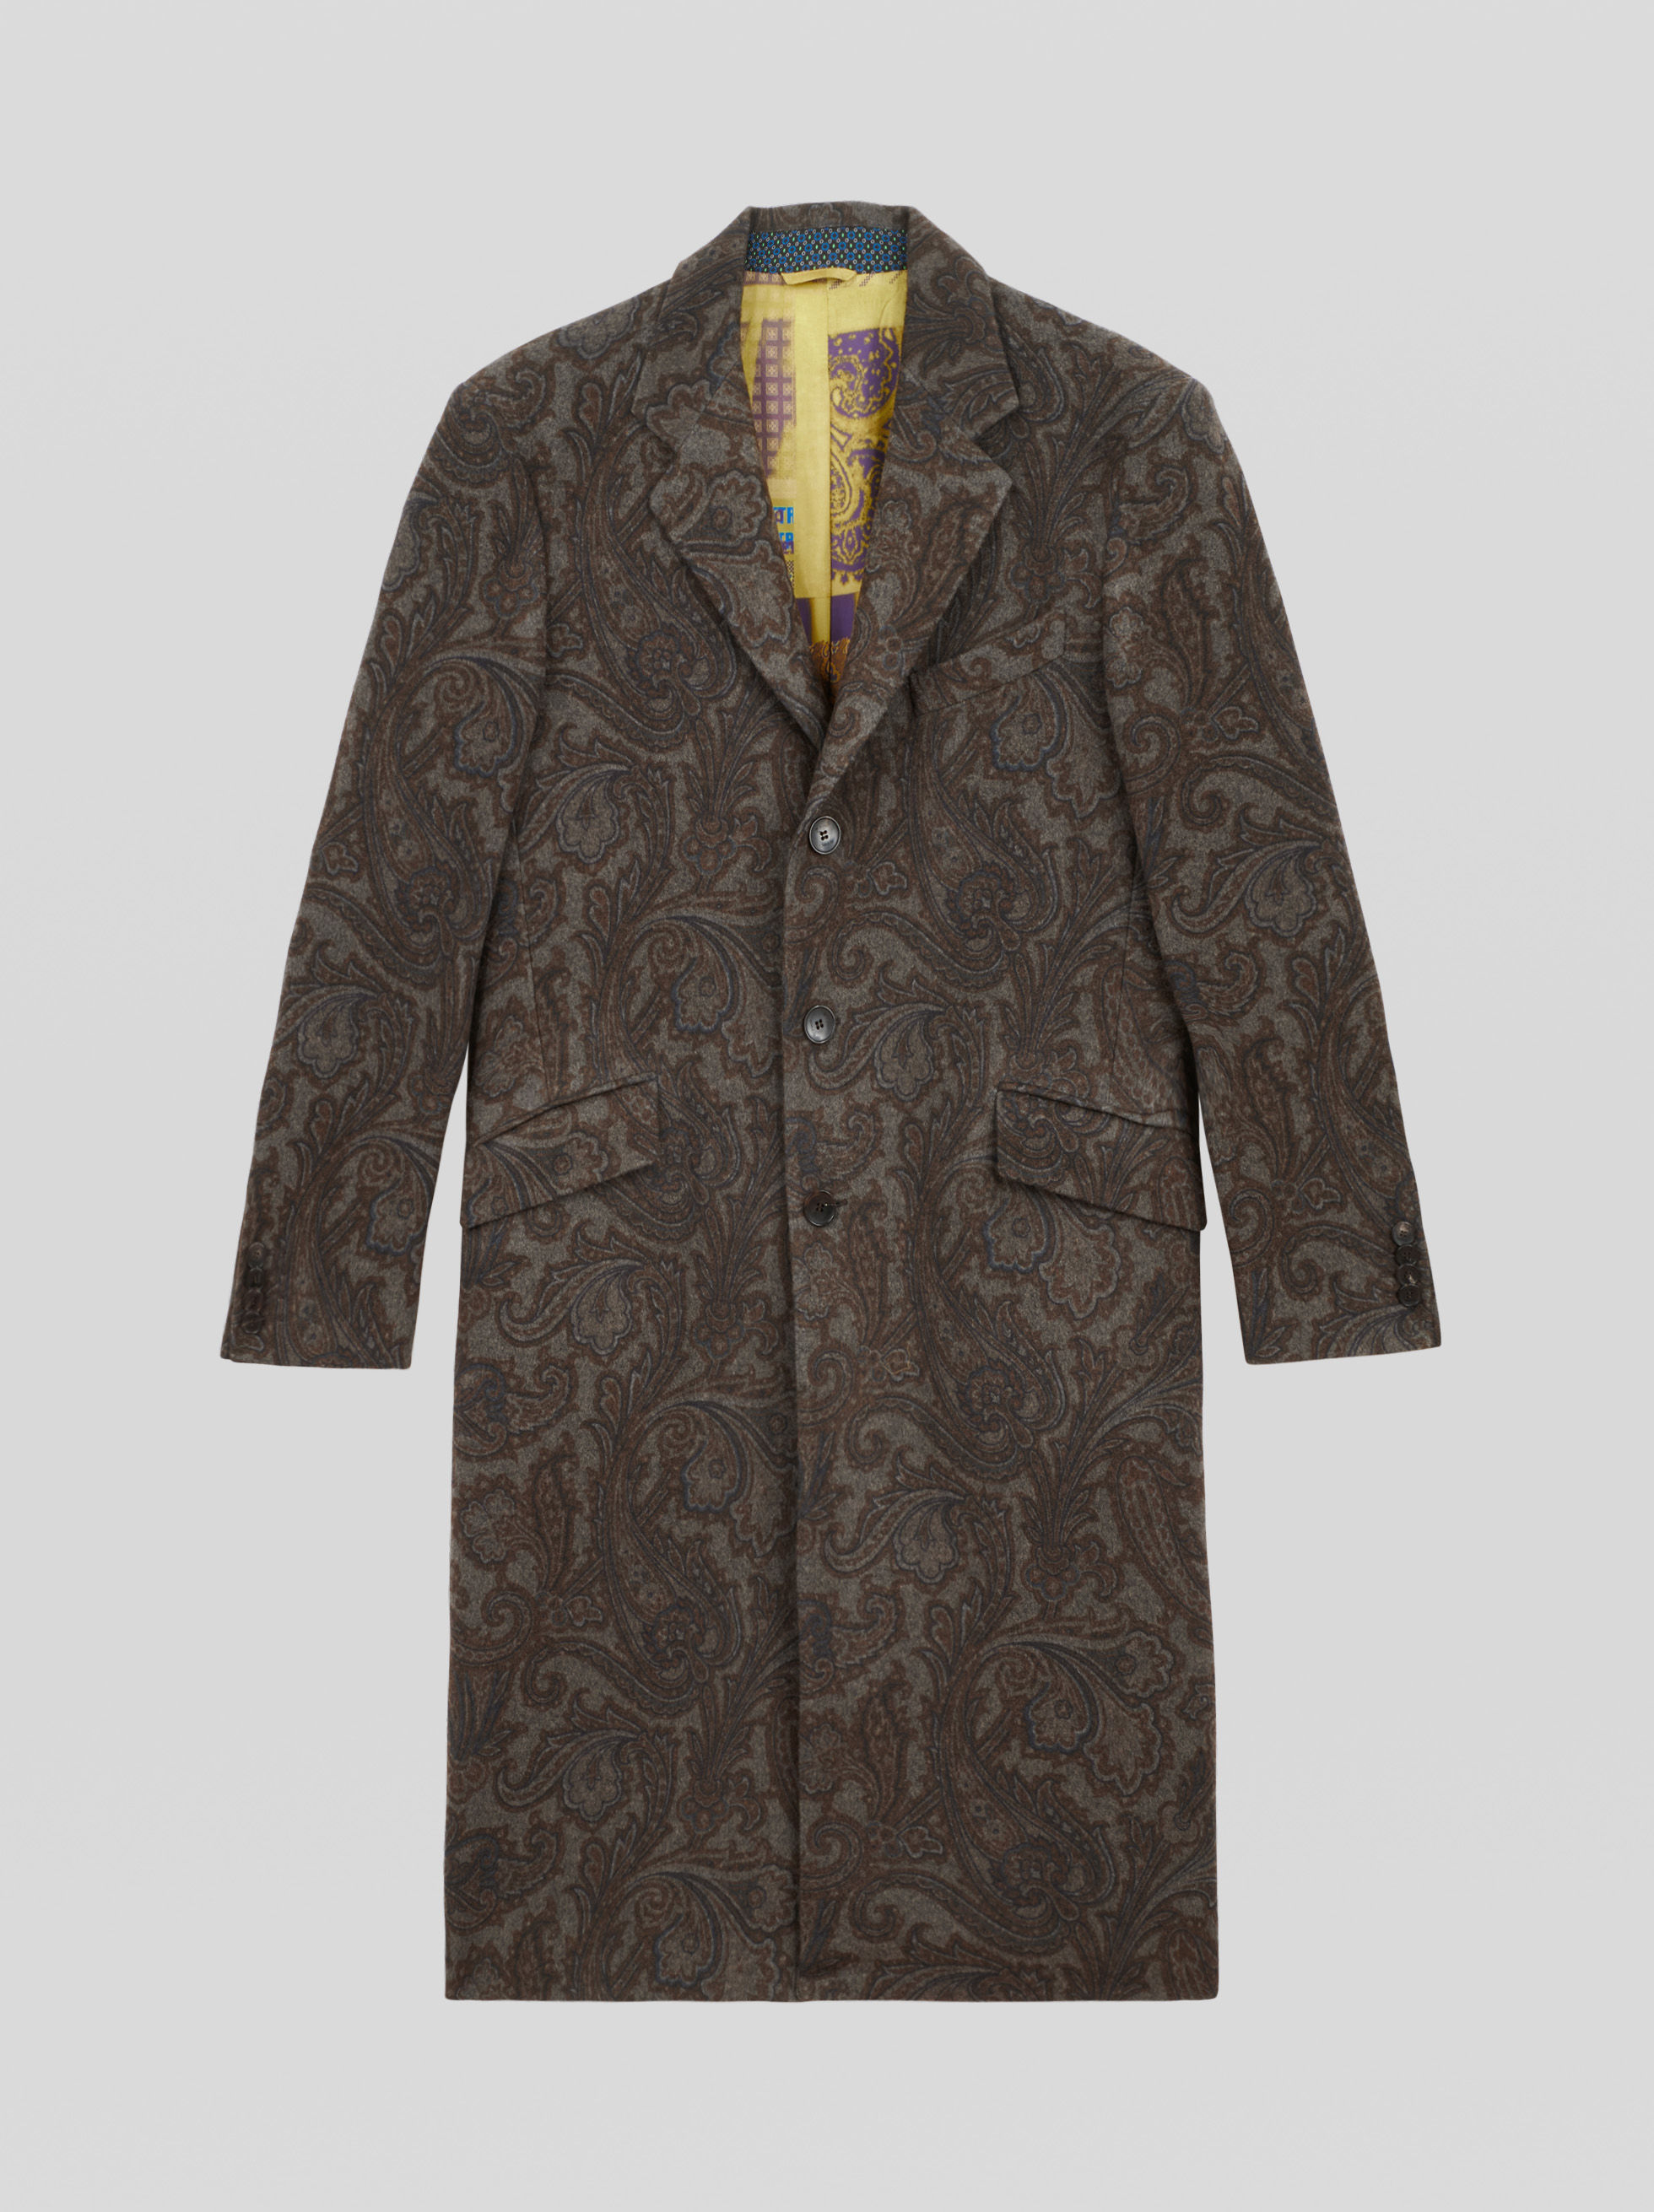 FLORAL PATTERN PAISLEY OVERCOAT